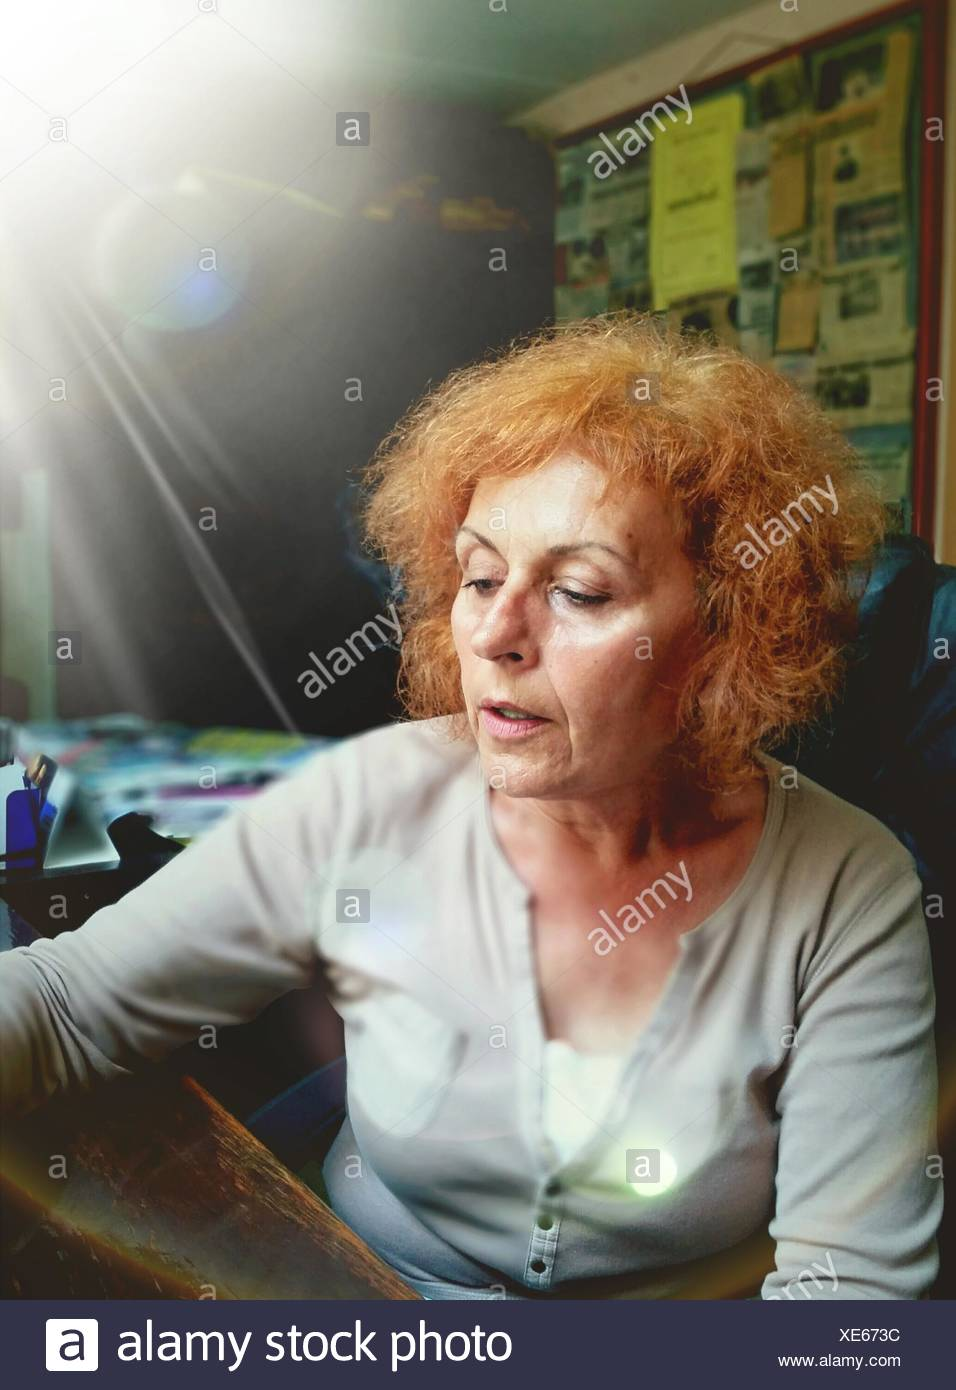 Close-Up Of Senior Woman - Stock Image